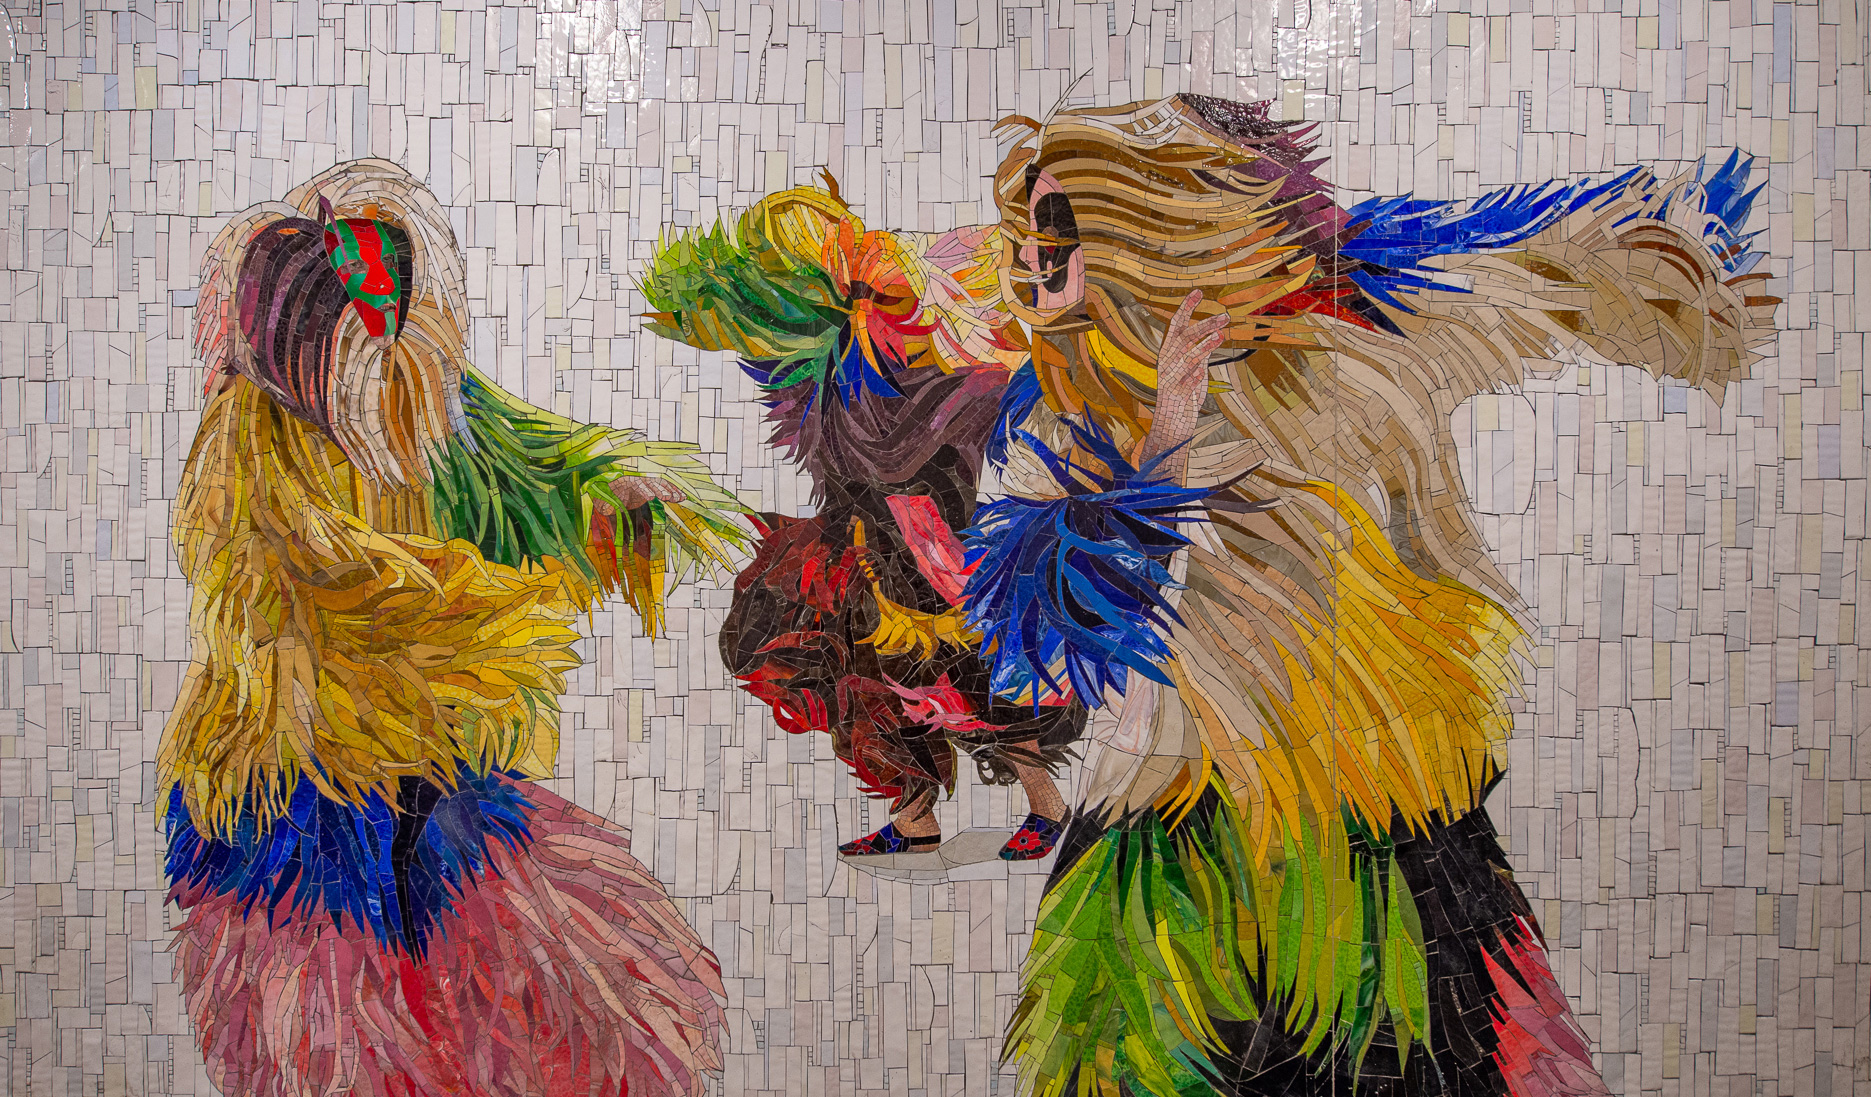 Nick Cave's Energetic 'Soundsuits' Dance Along the New York City Subway in a 360-Foot Mosaic